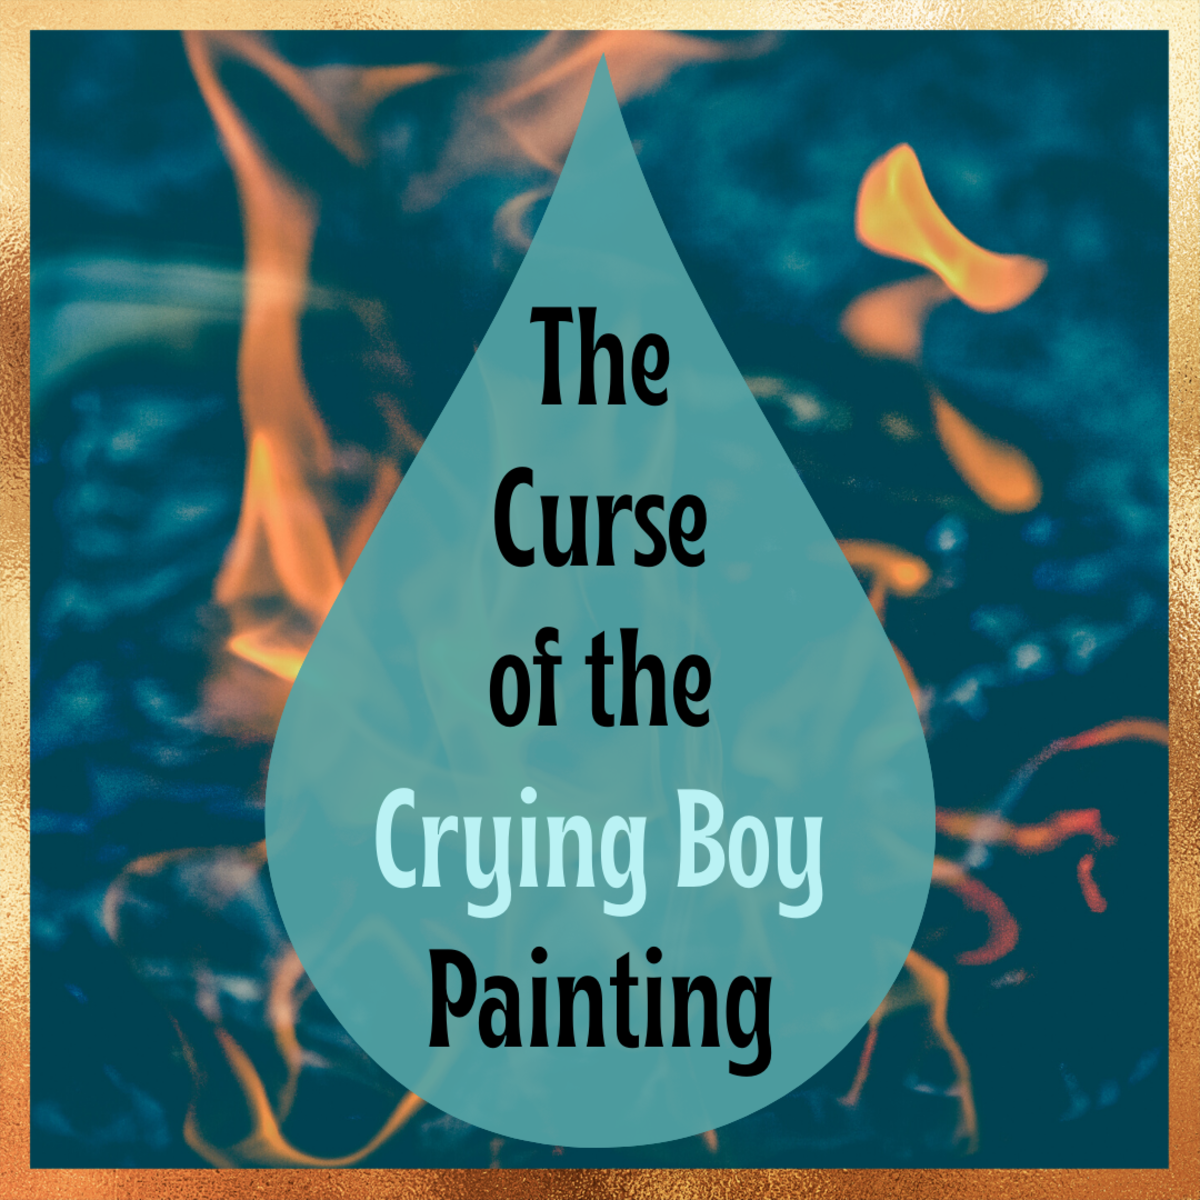 Learn about the supposed curse behind the Crying Boy Painting, a replica painting that was popular in the 1980s.